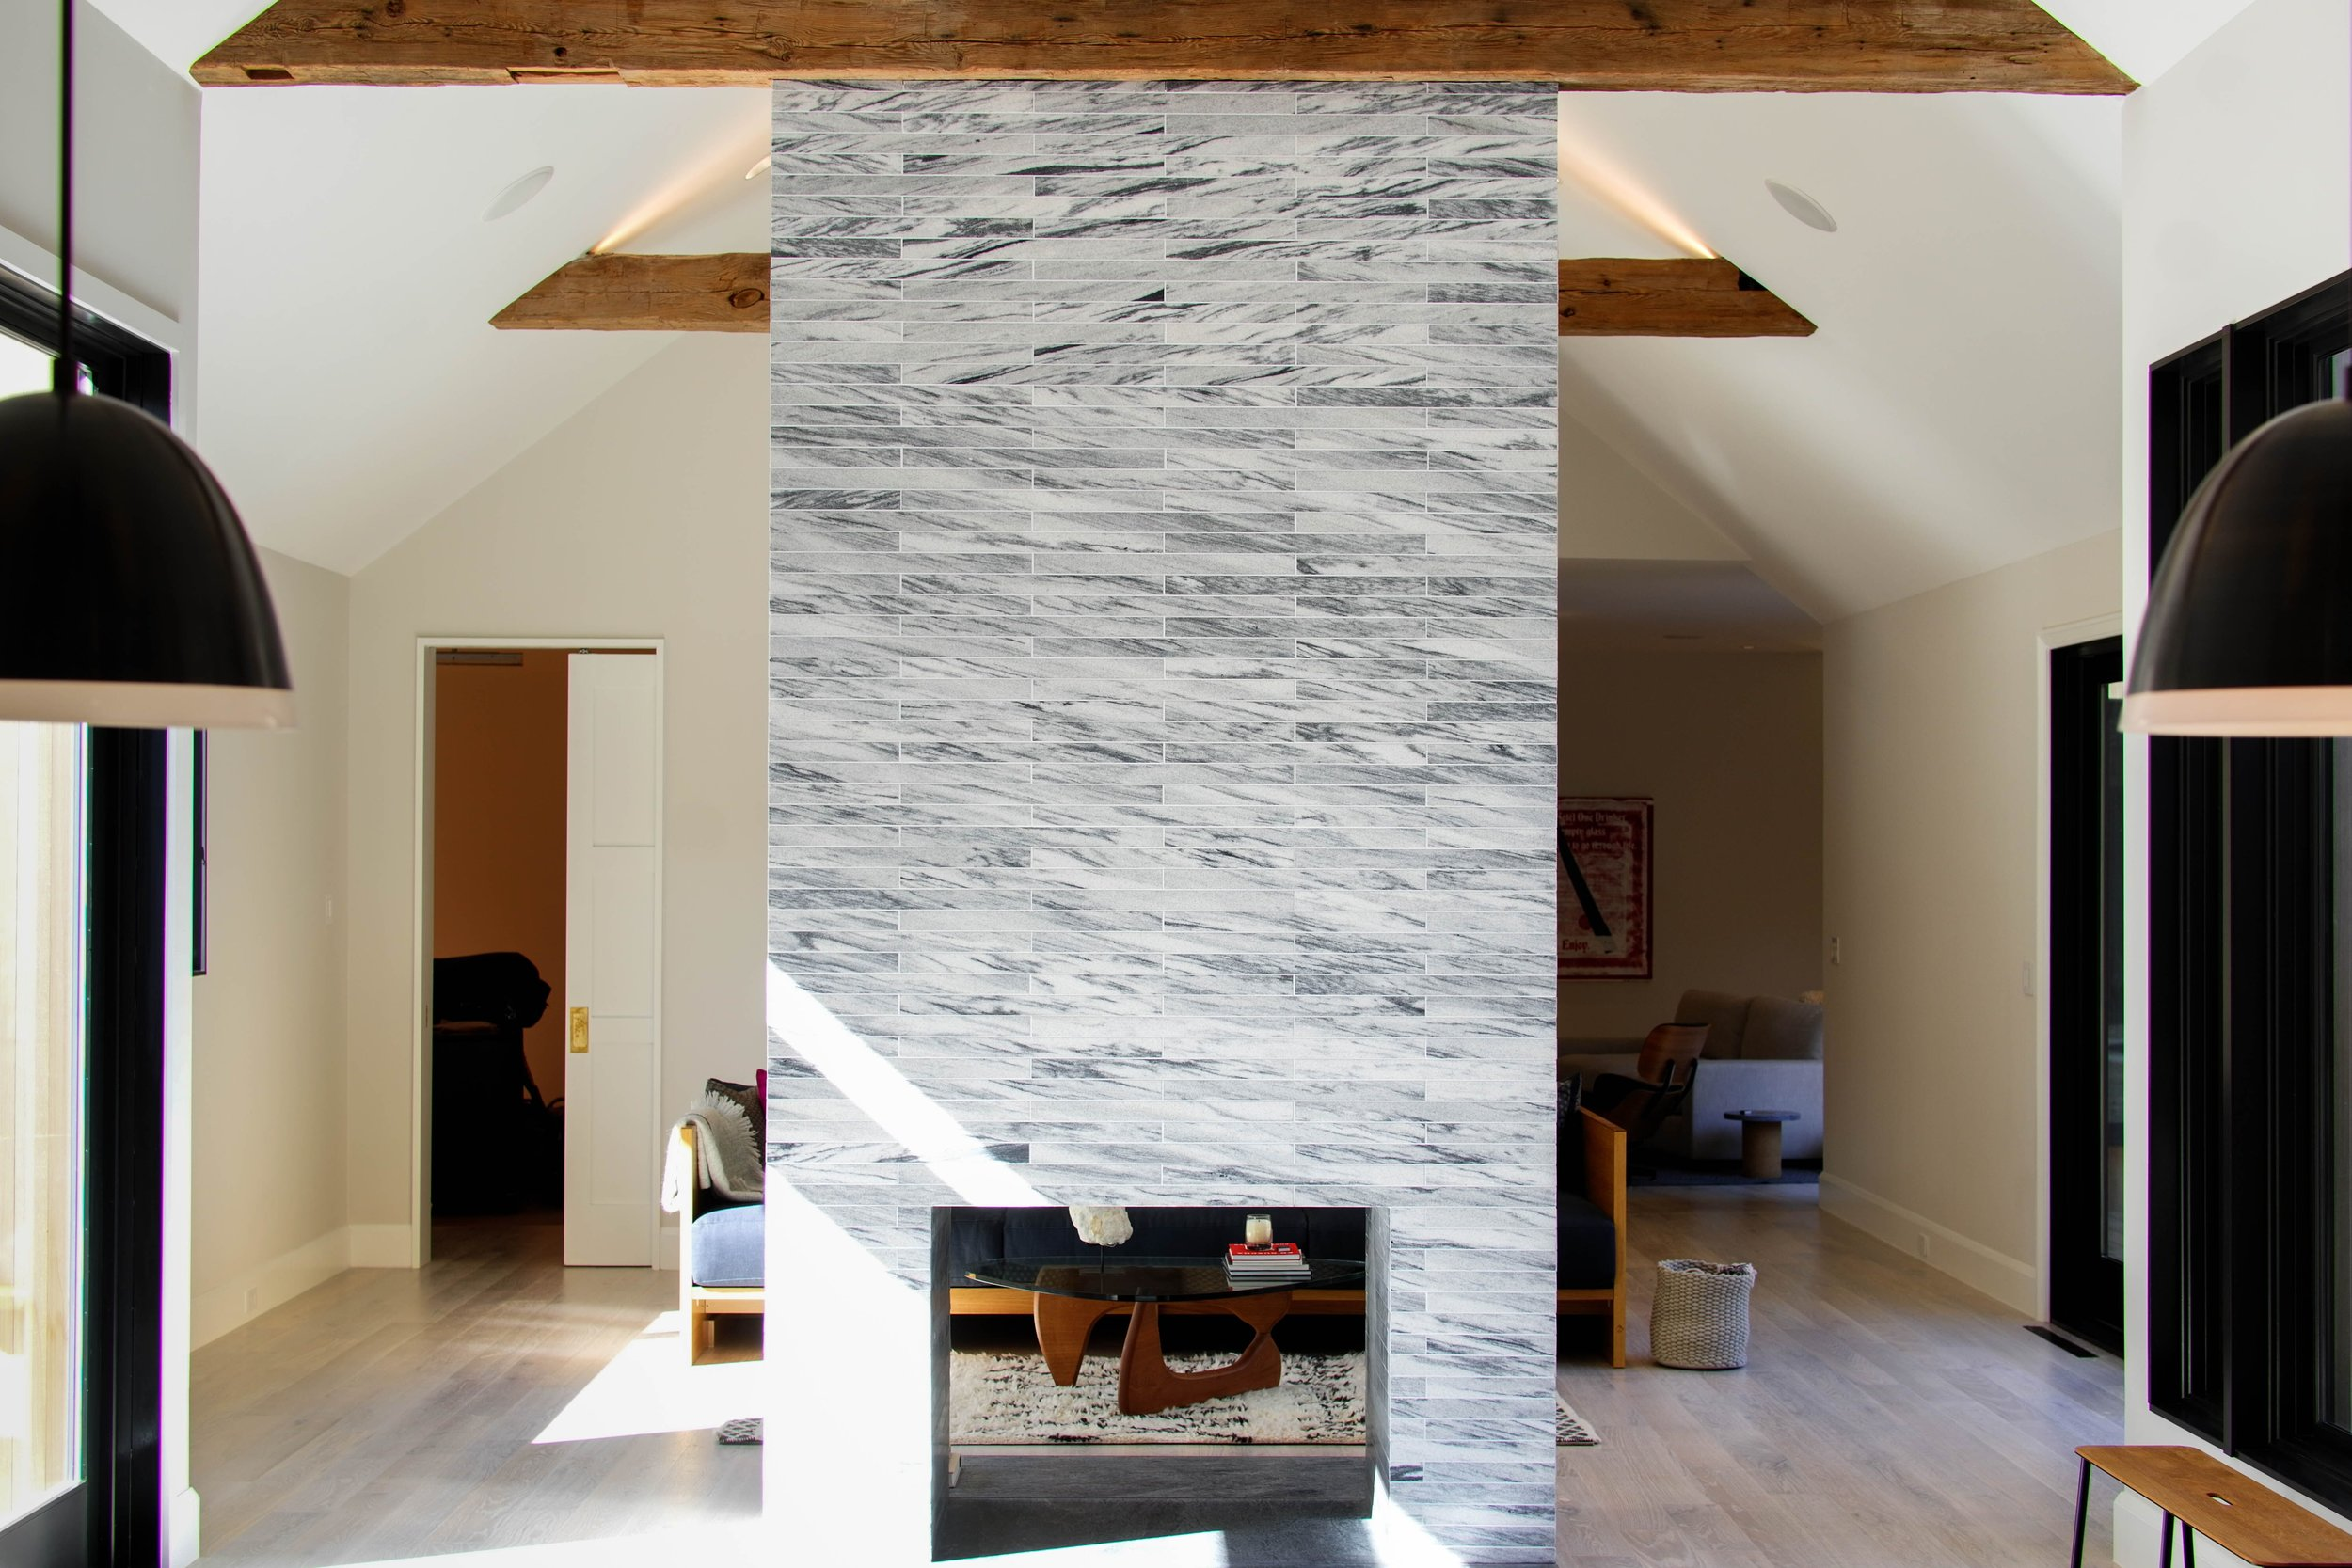 Pearl Grey Marble, Studio Zung